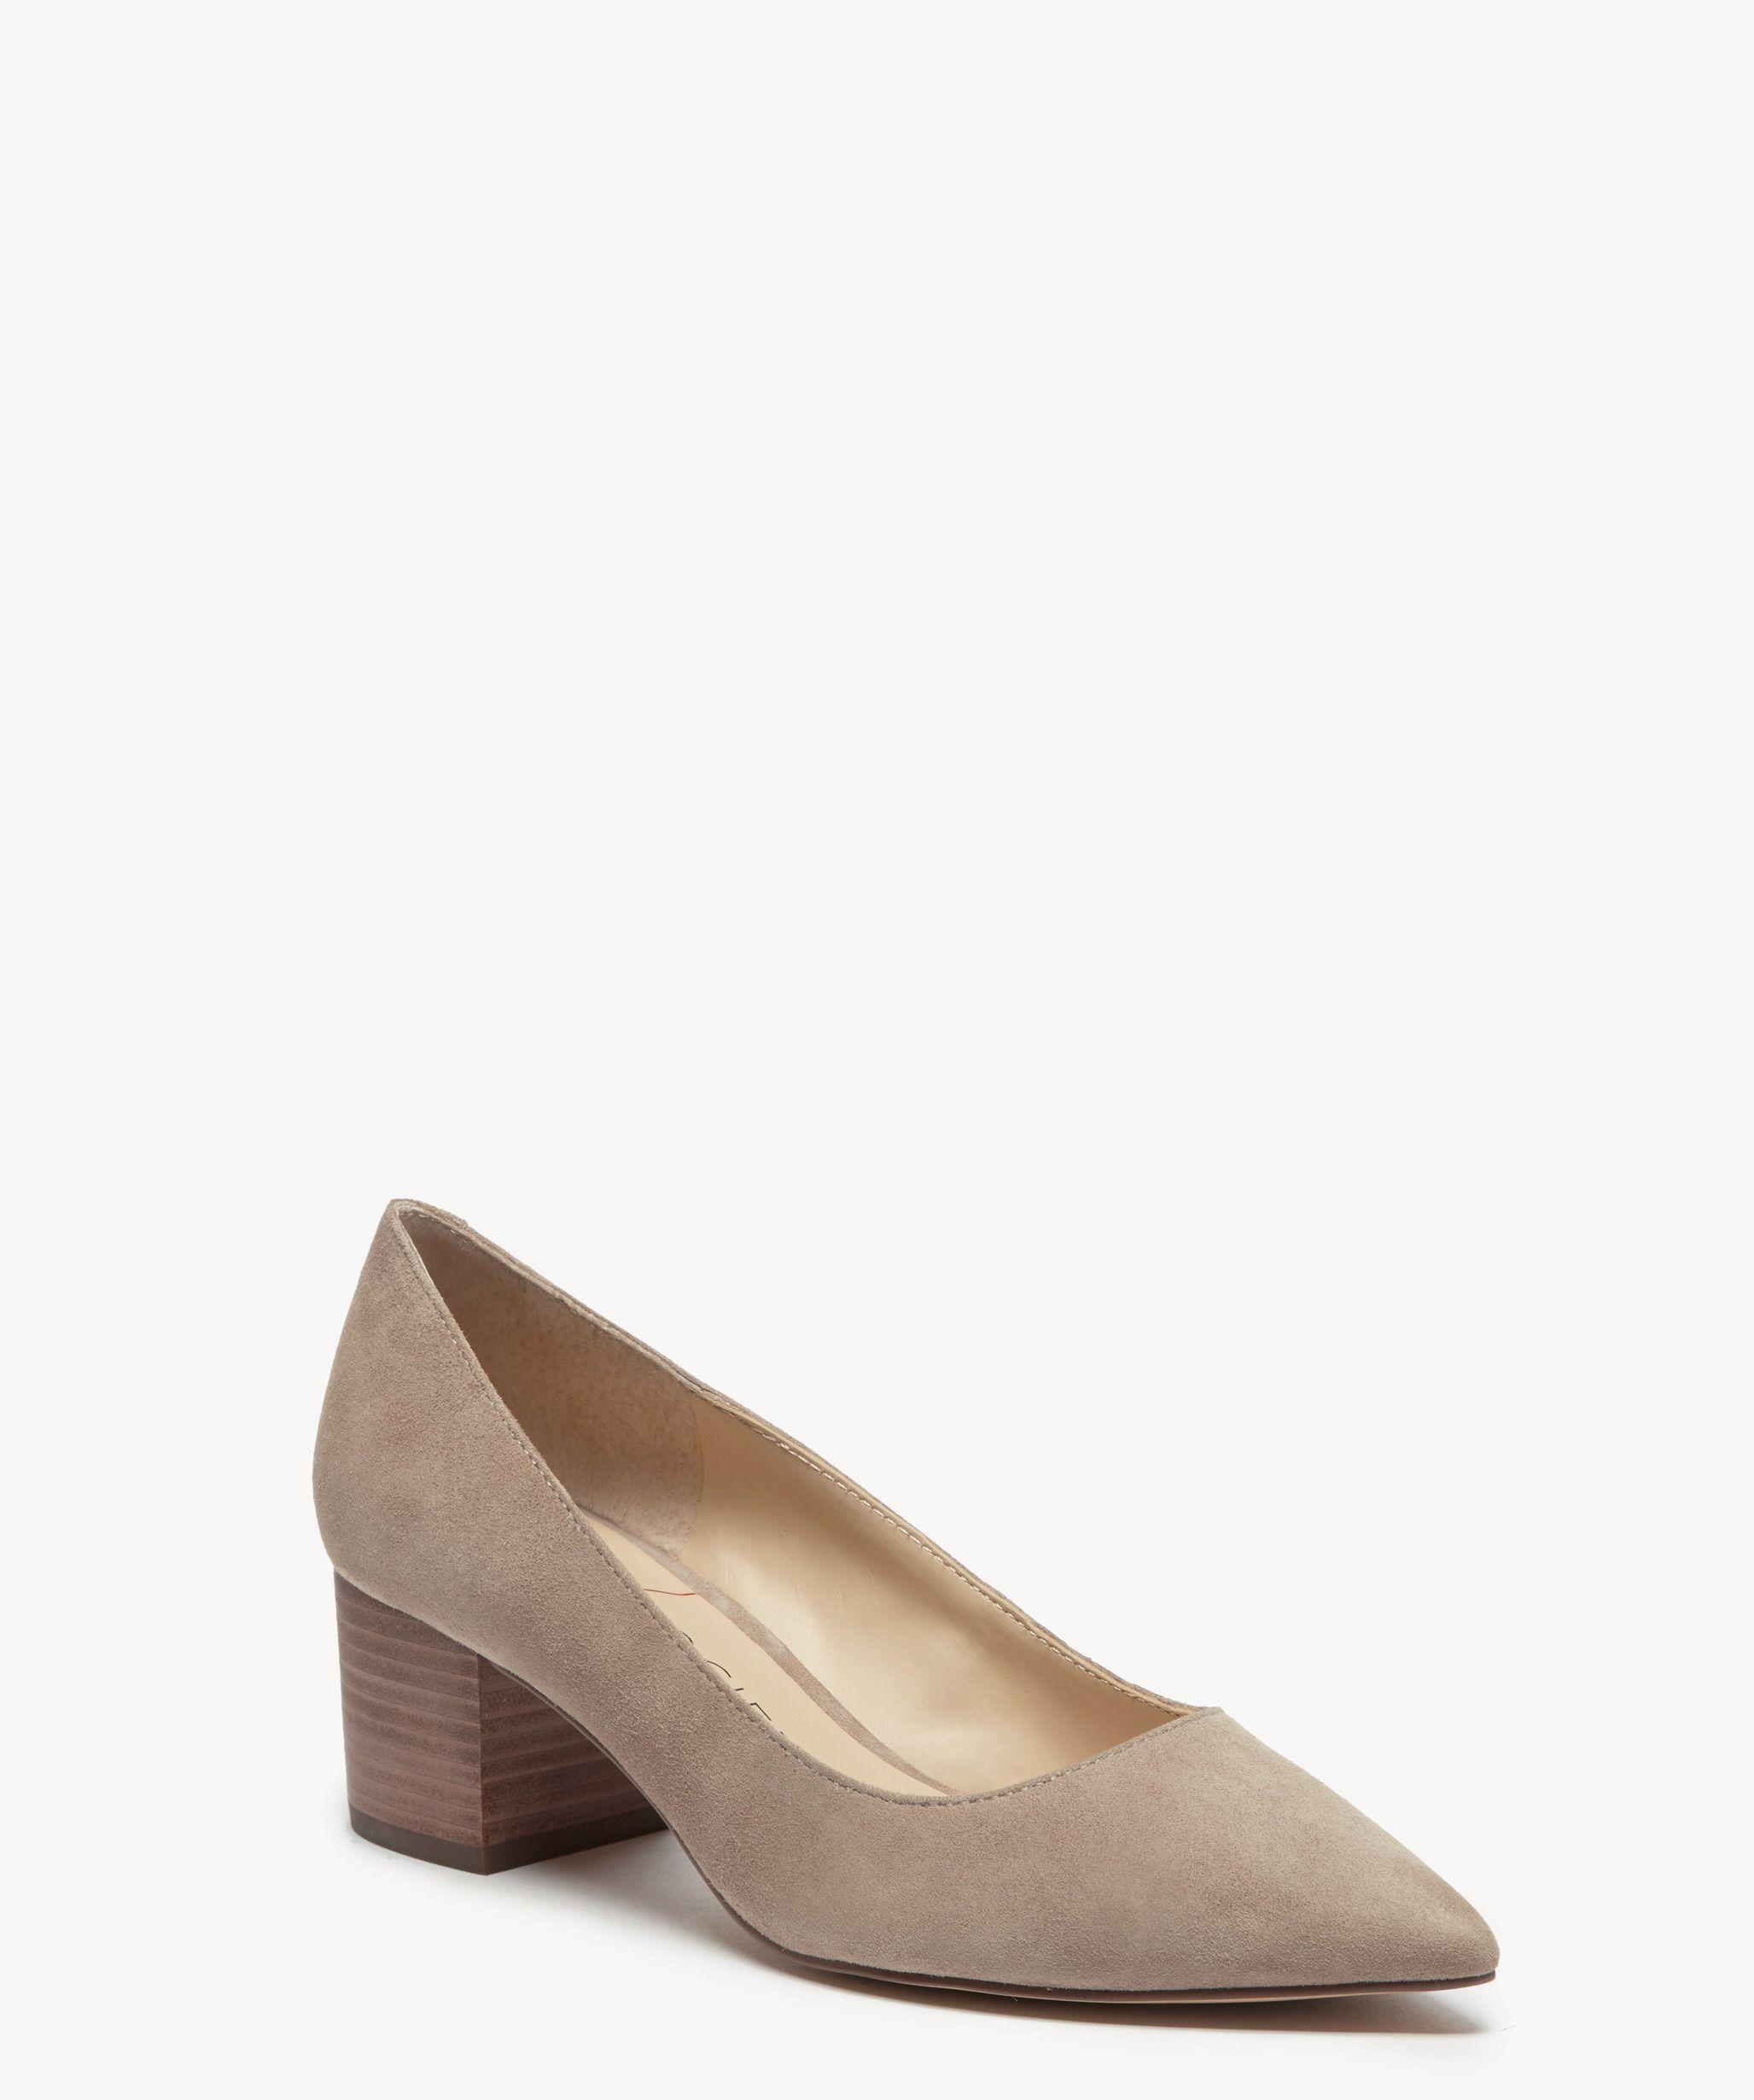 20a851a8f176 Lyst - Sole Society Andorra Block Heel Pump in Natural